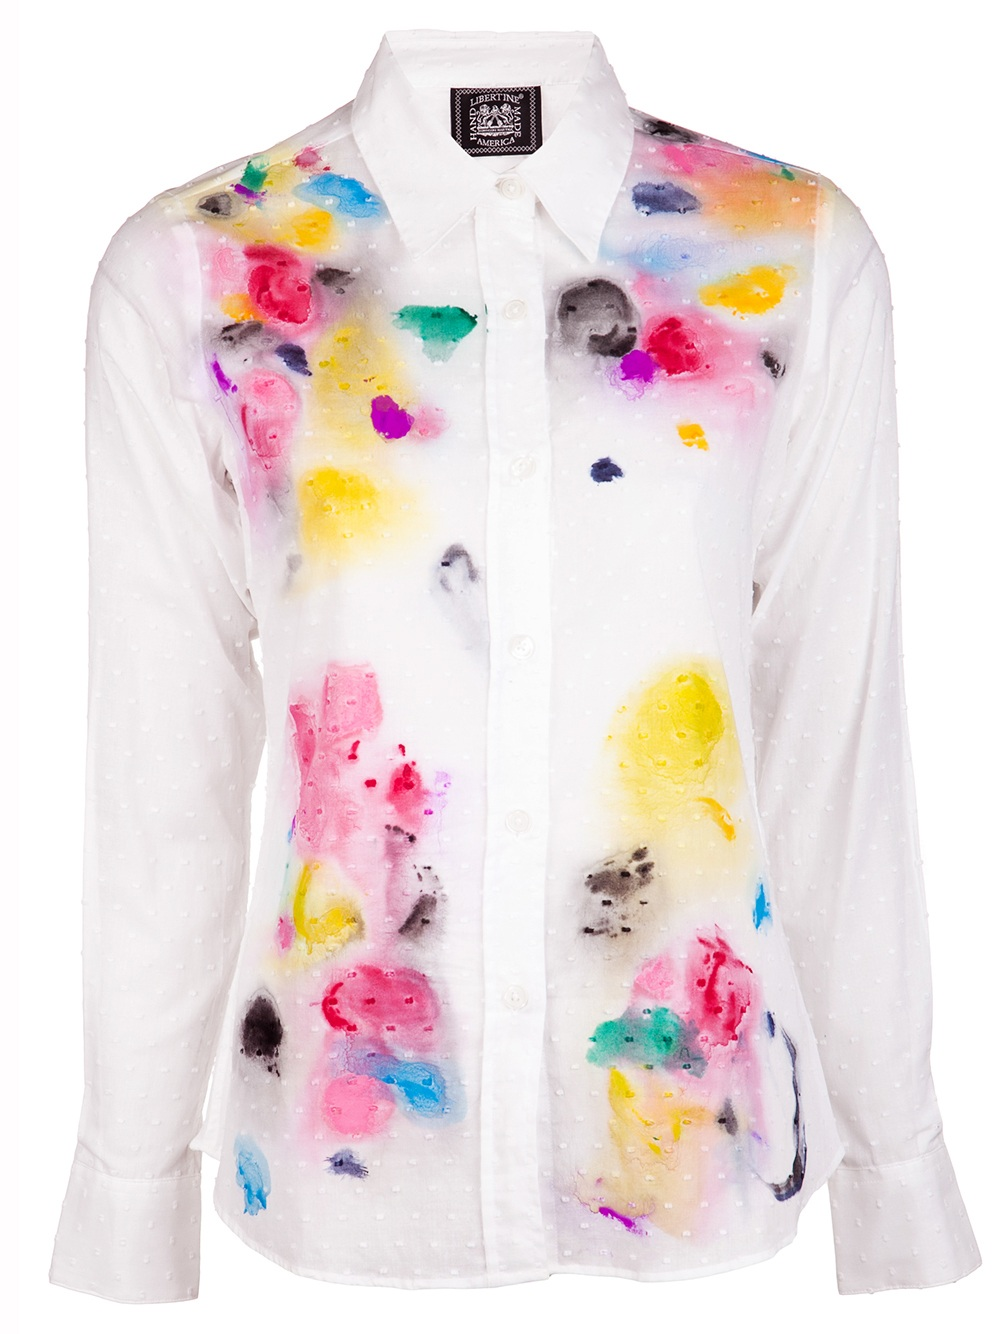 Hand Painted Shirt in White